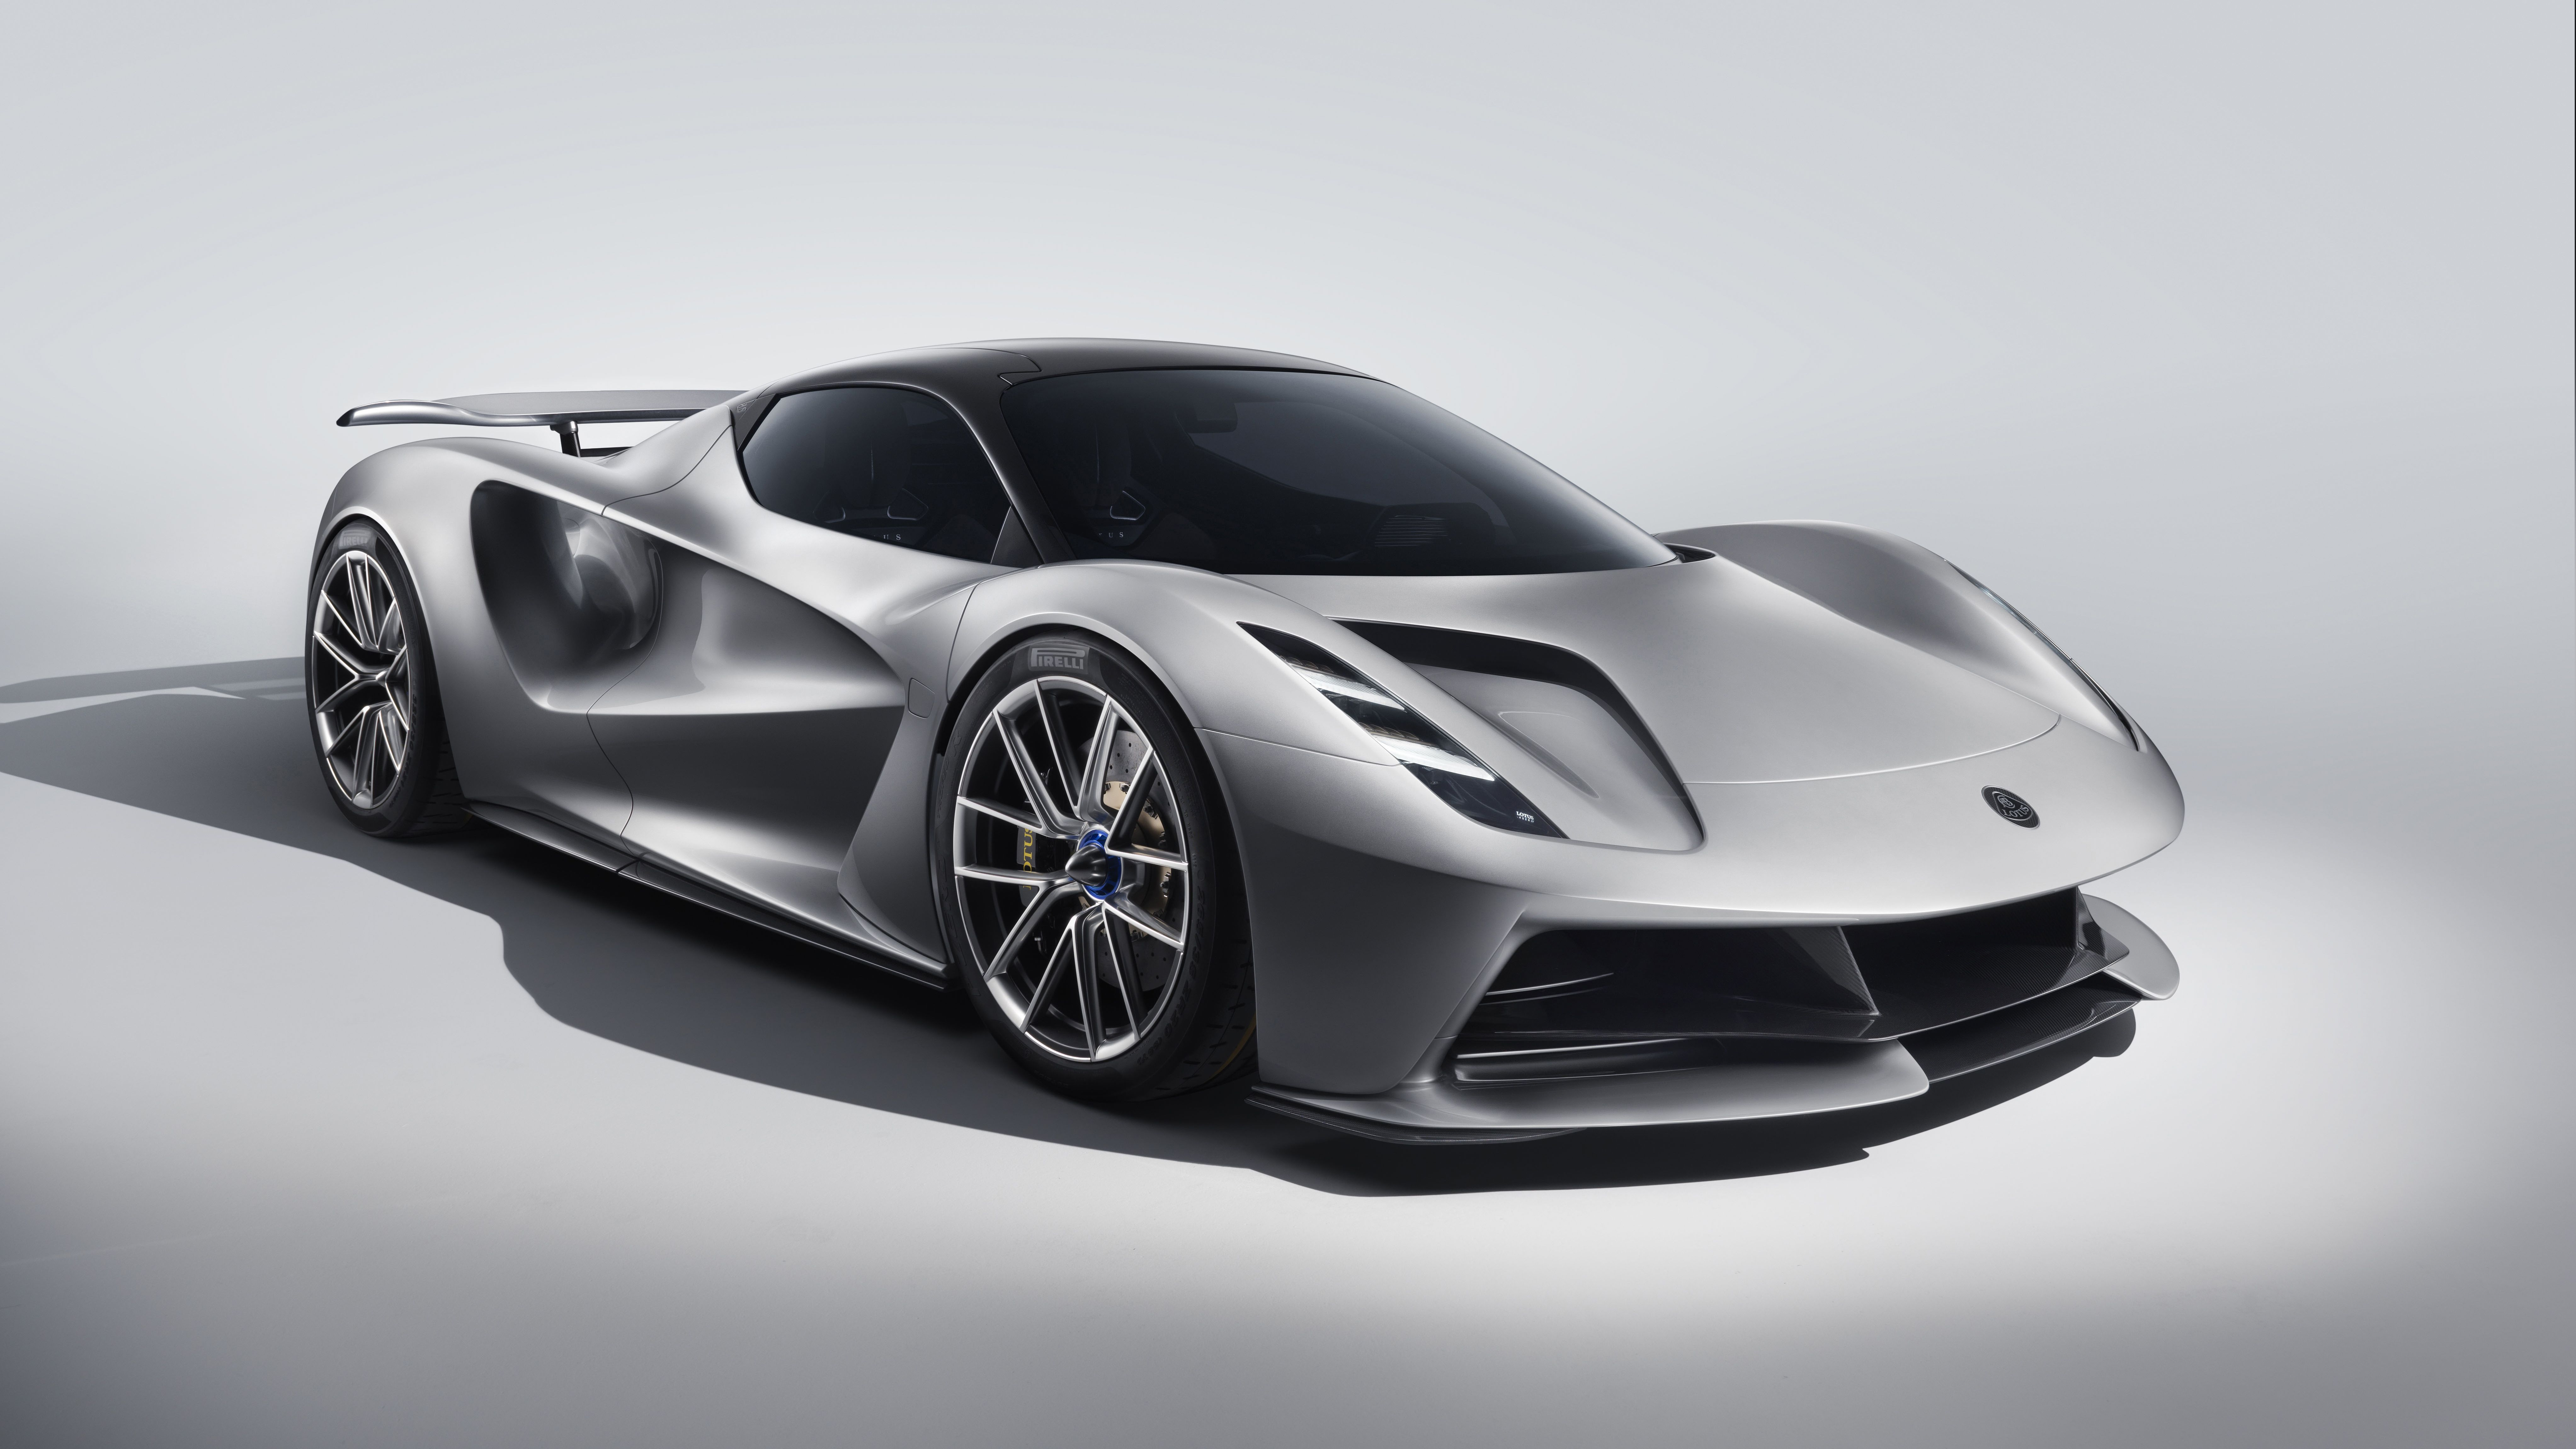 Did Lotus Just Rewrite The Book On All Electric Supercars With The 2020 Evija Coche Electrico Superdeportivos Fotos De Autos